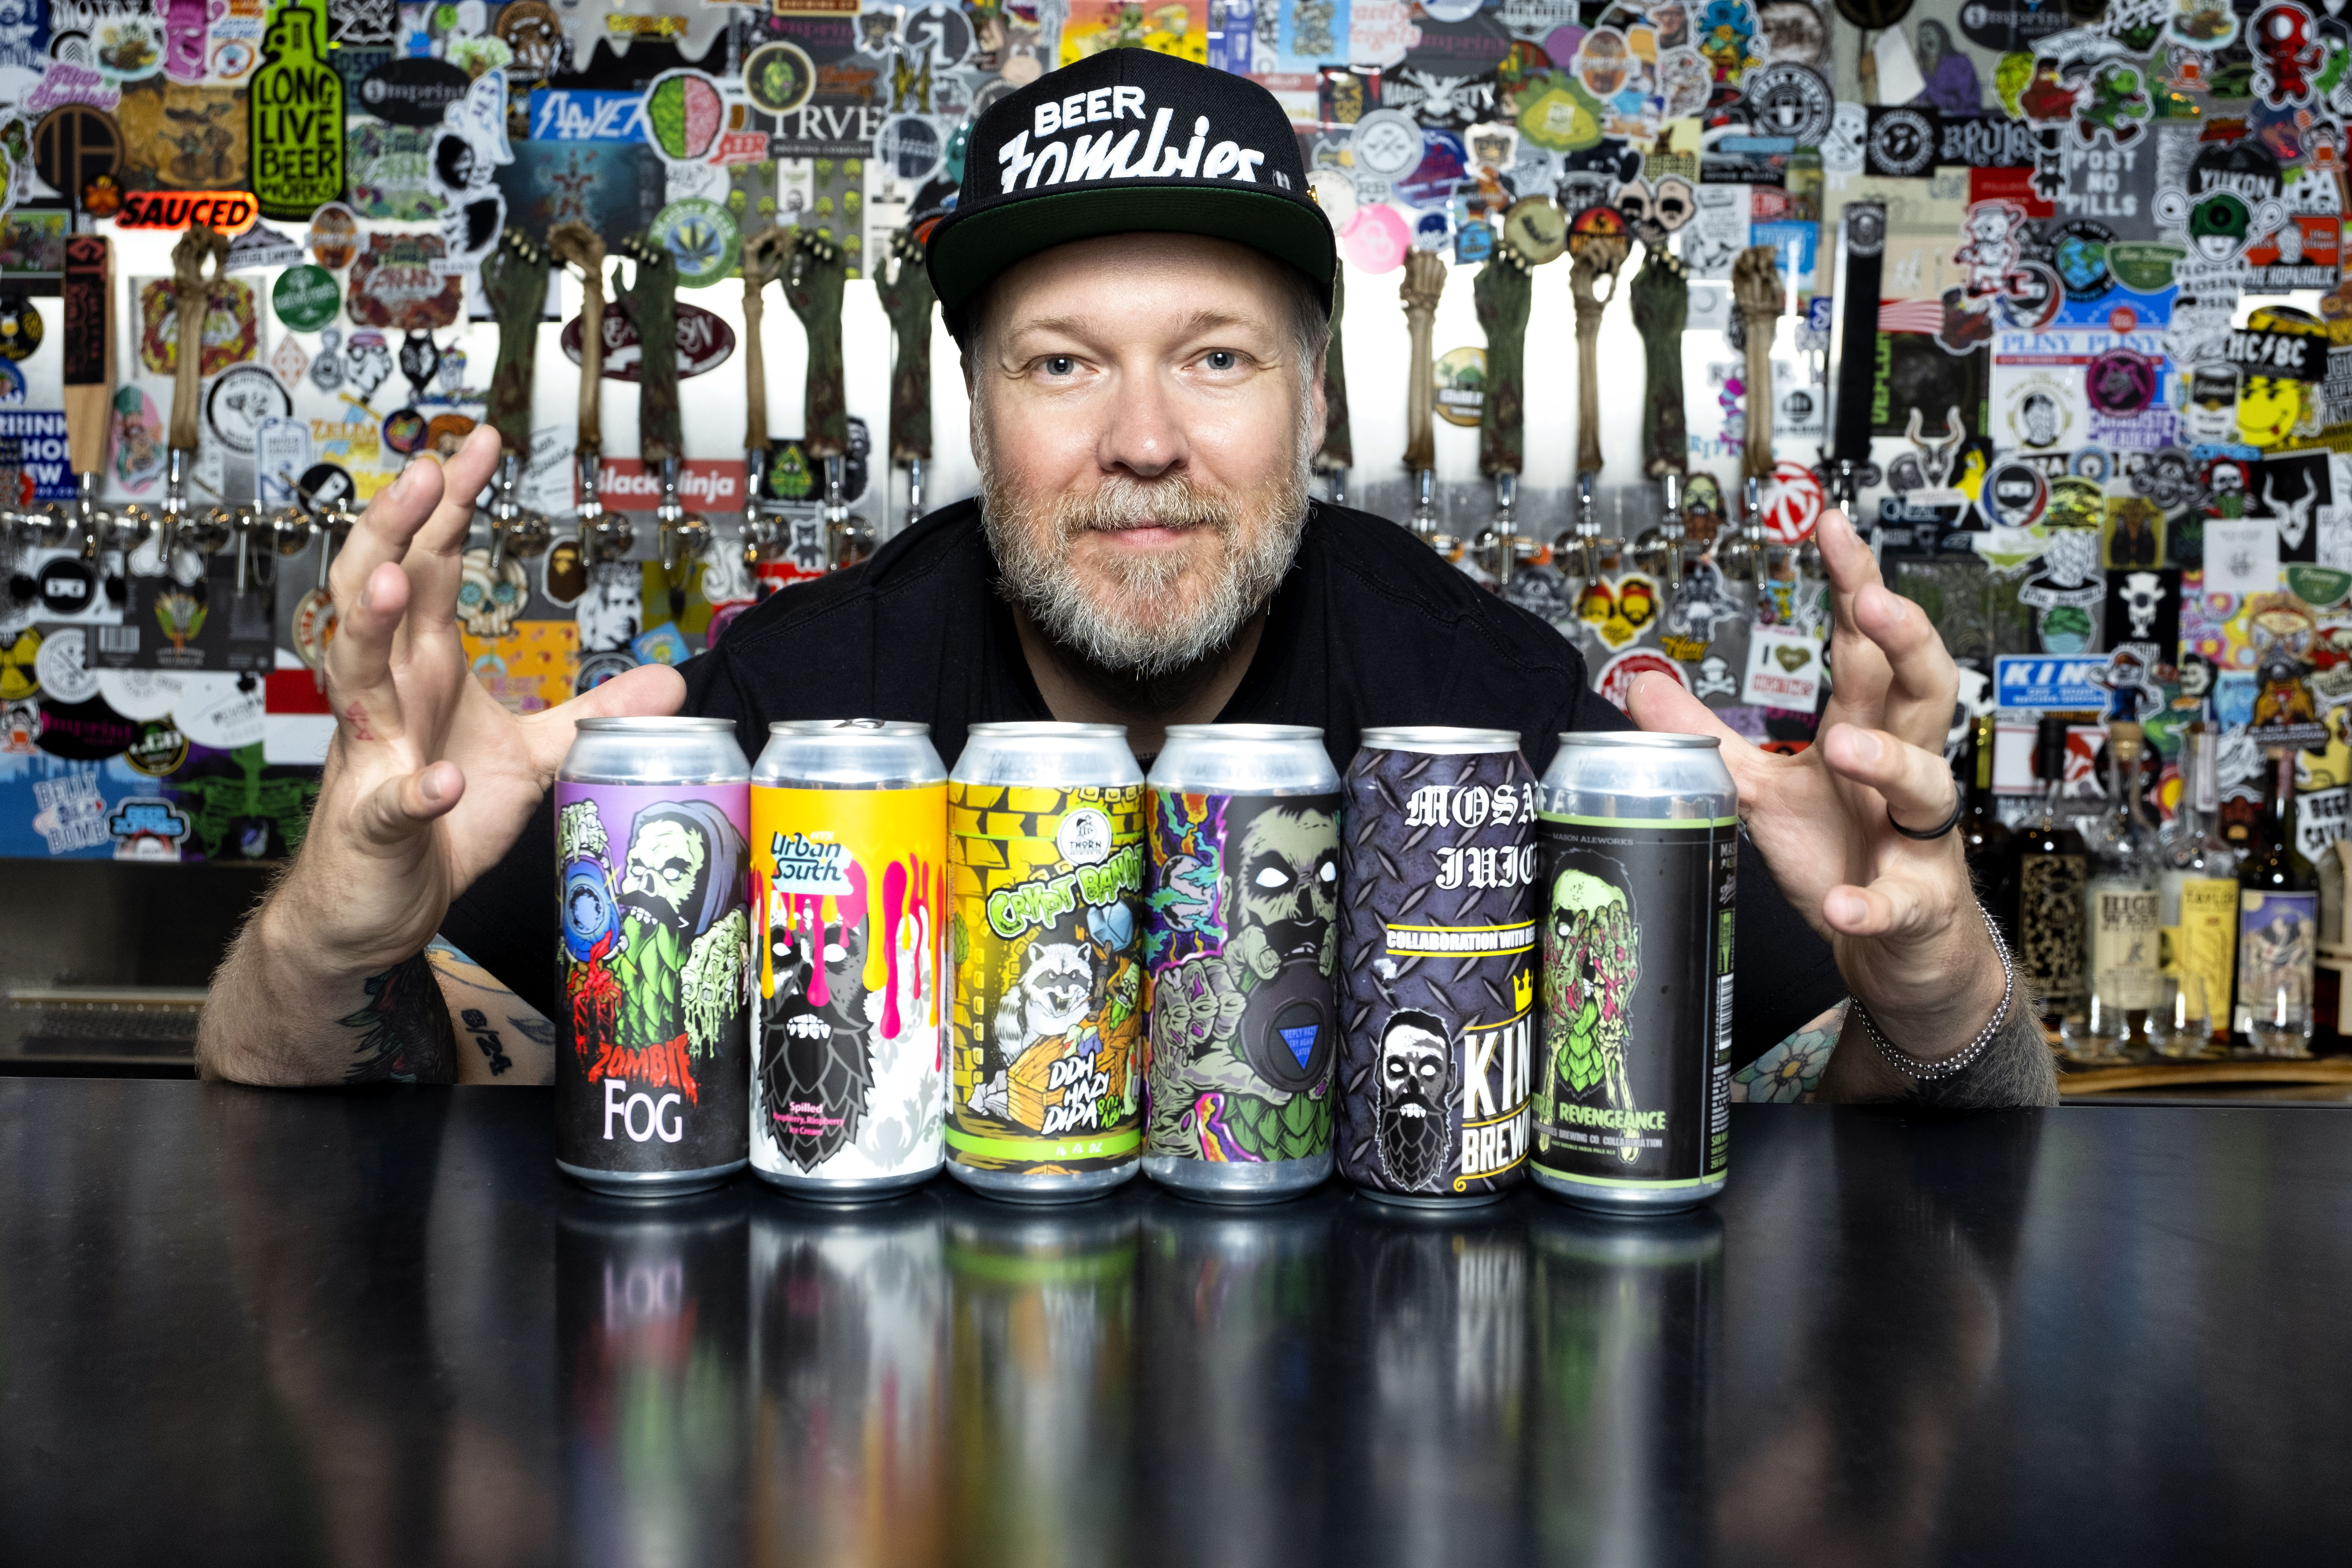 A man holds his hands on either side of six beer cans